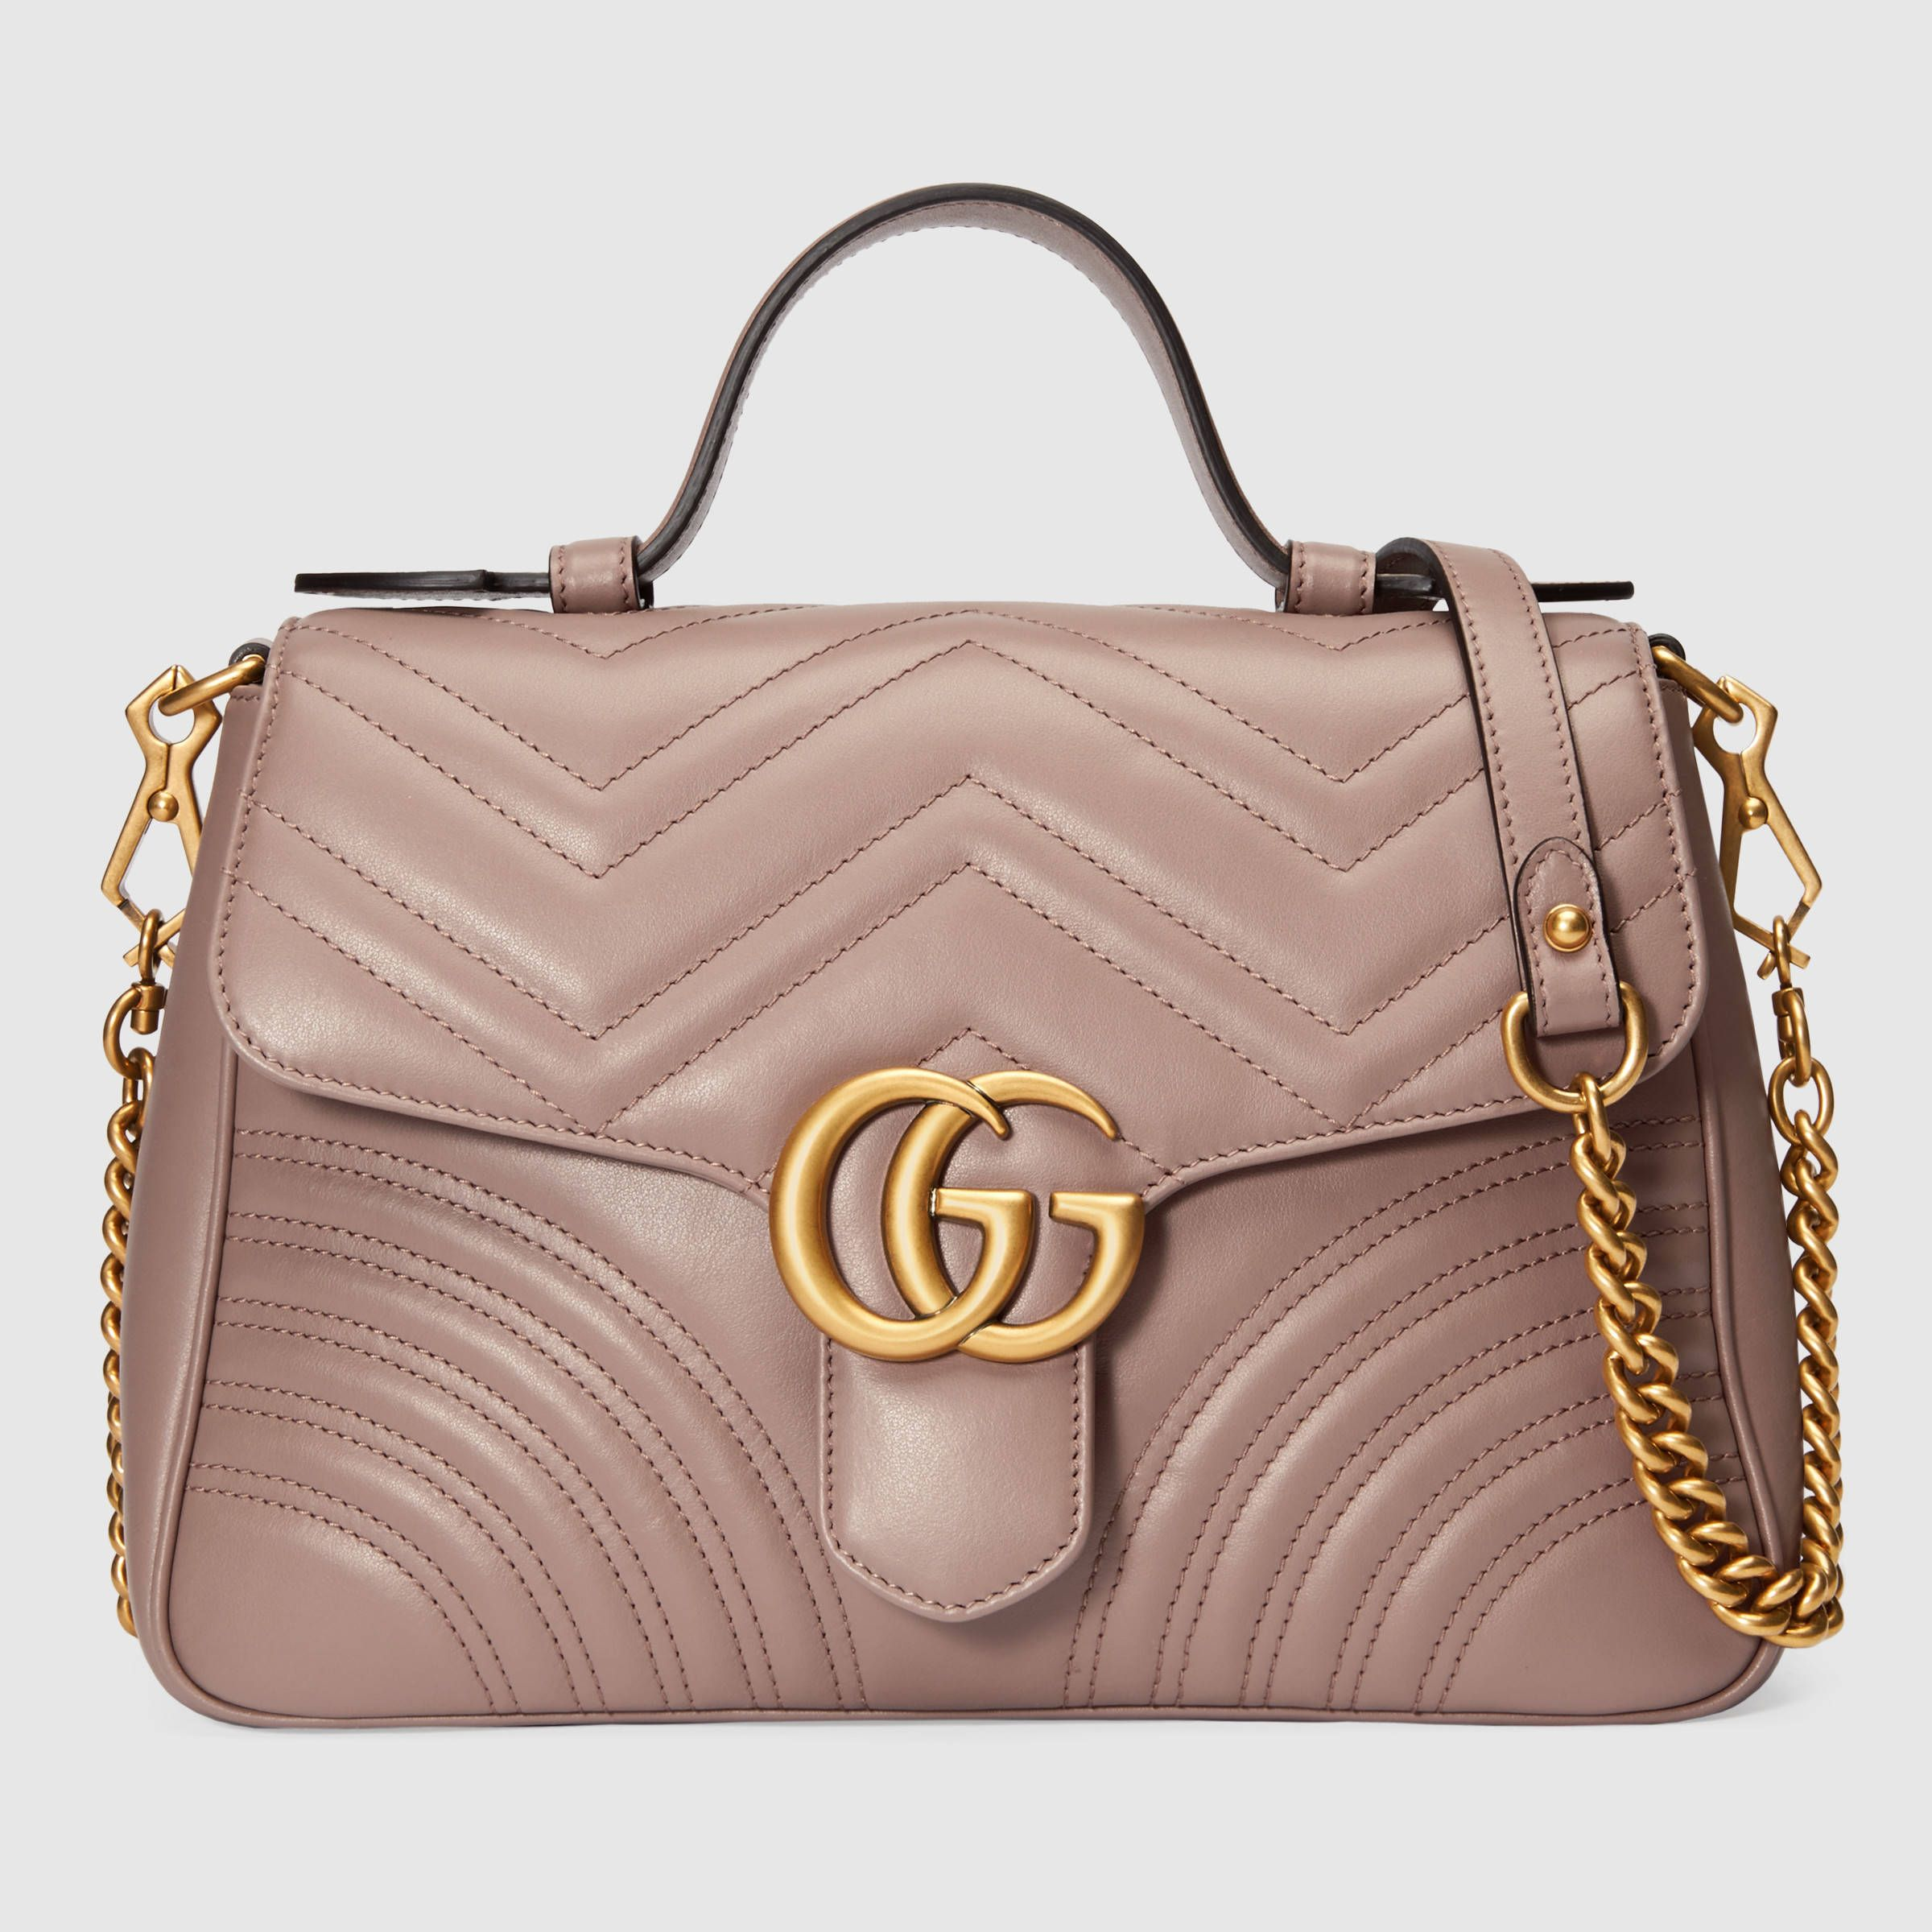 611402a87be GG Marmont small top handle bag in 2019